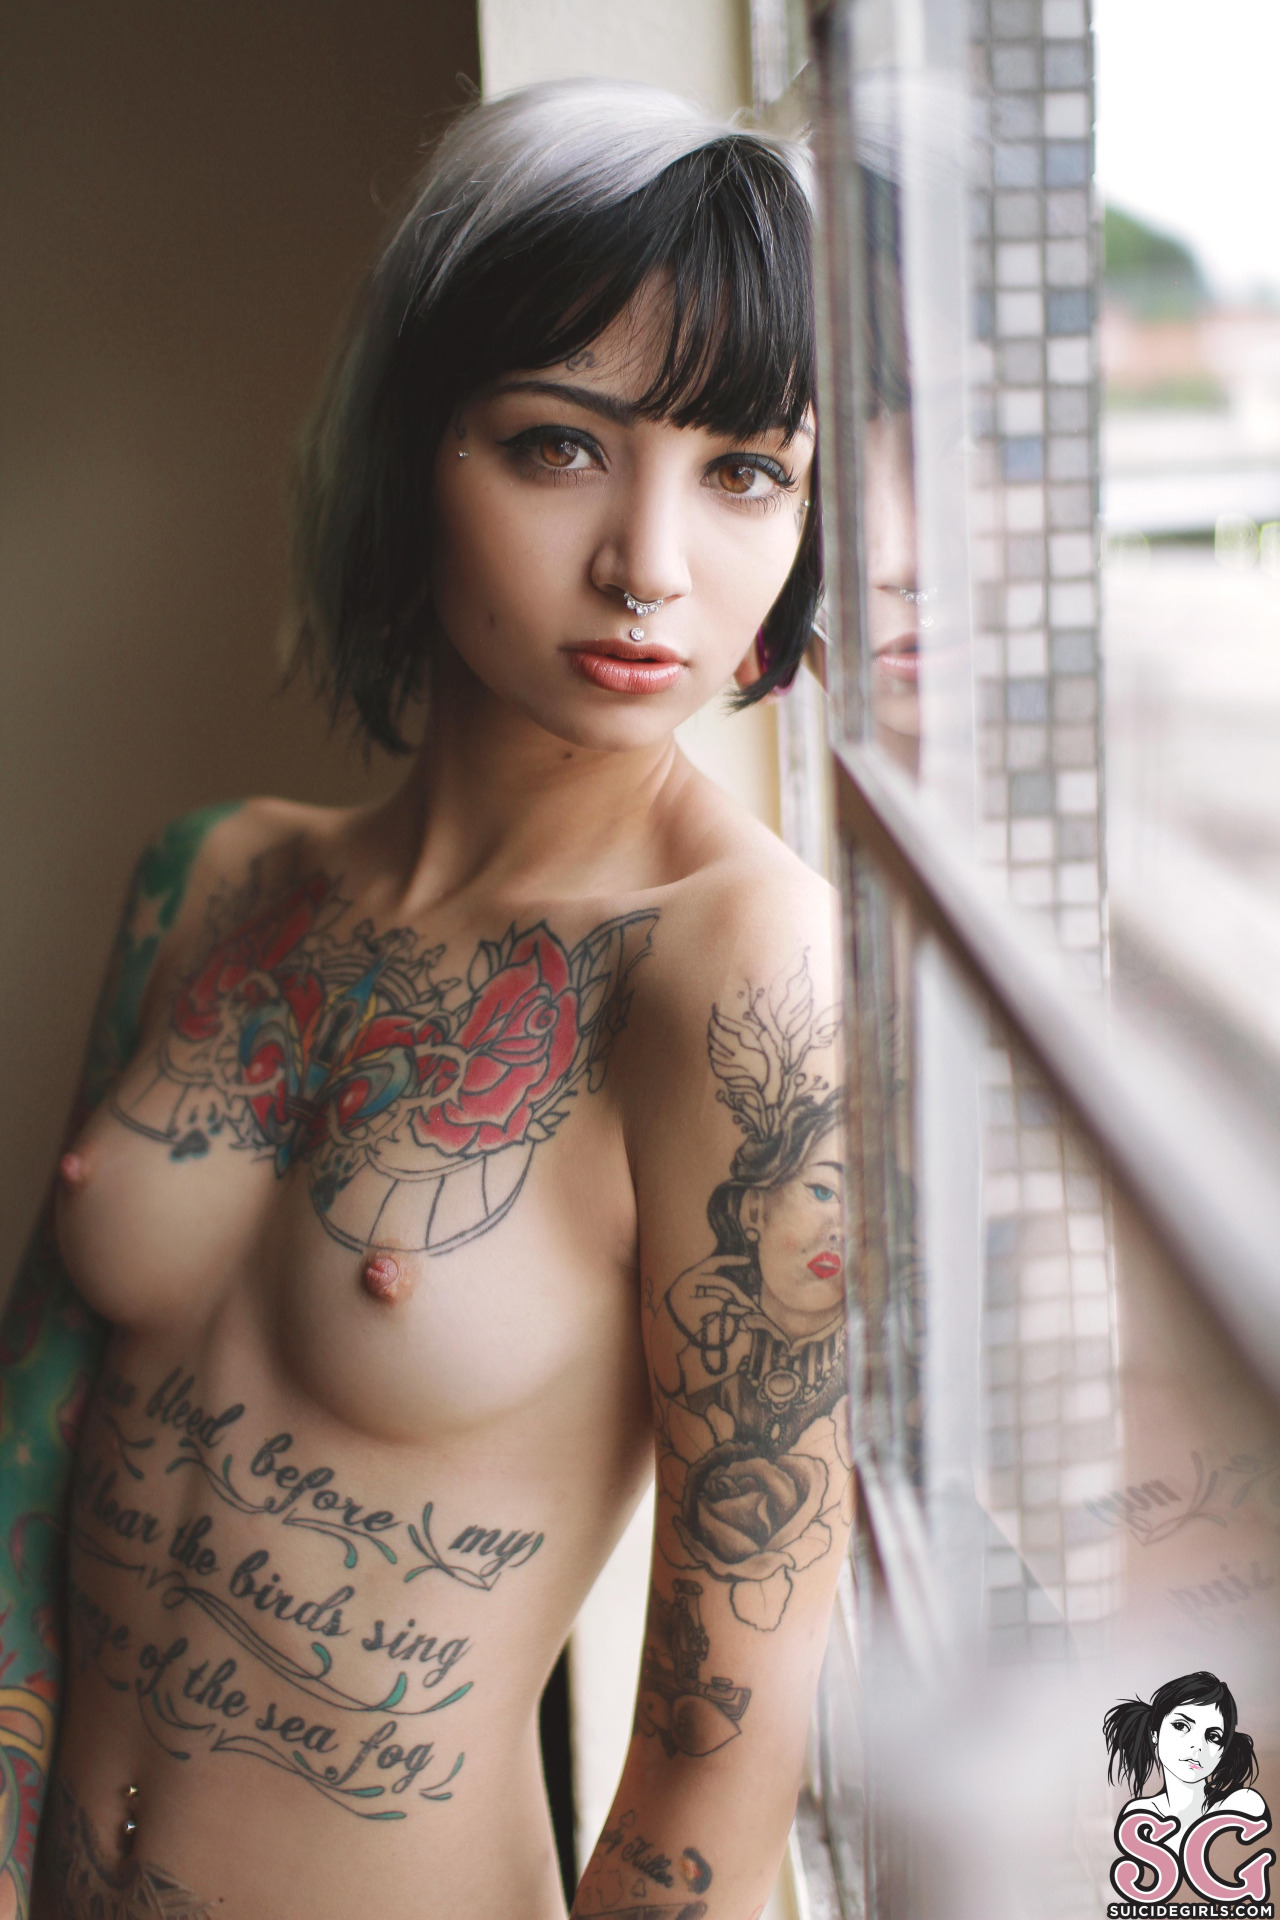 Are not Jenna suicide girl nude accept. opinion